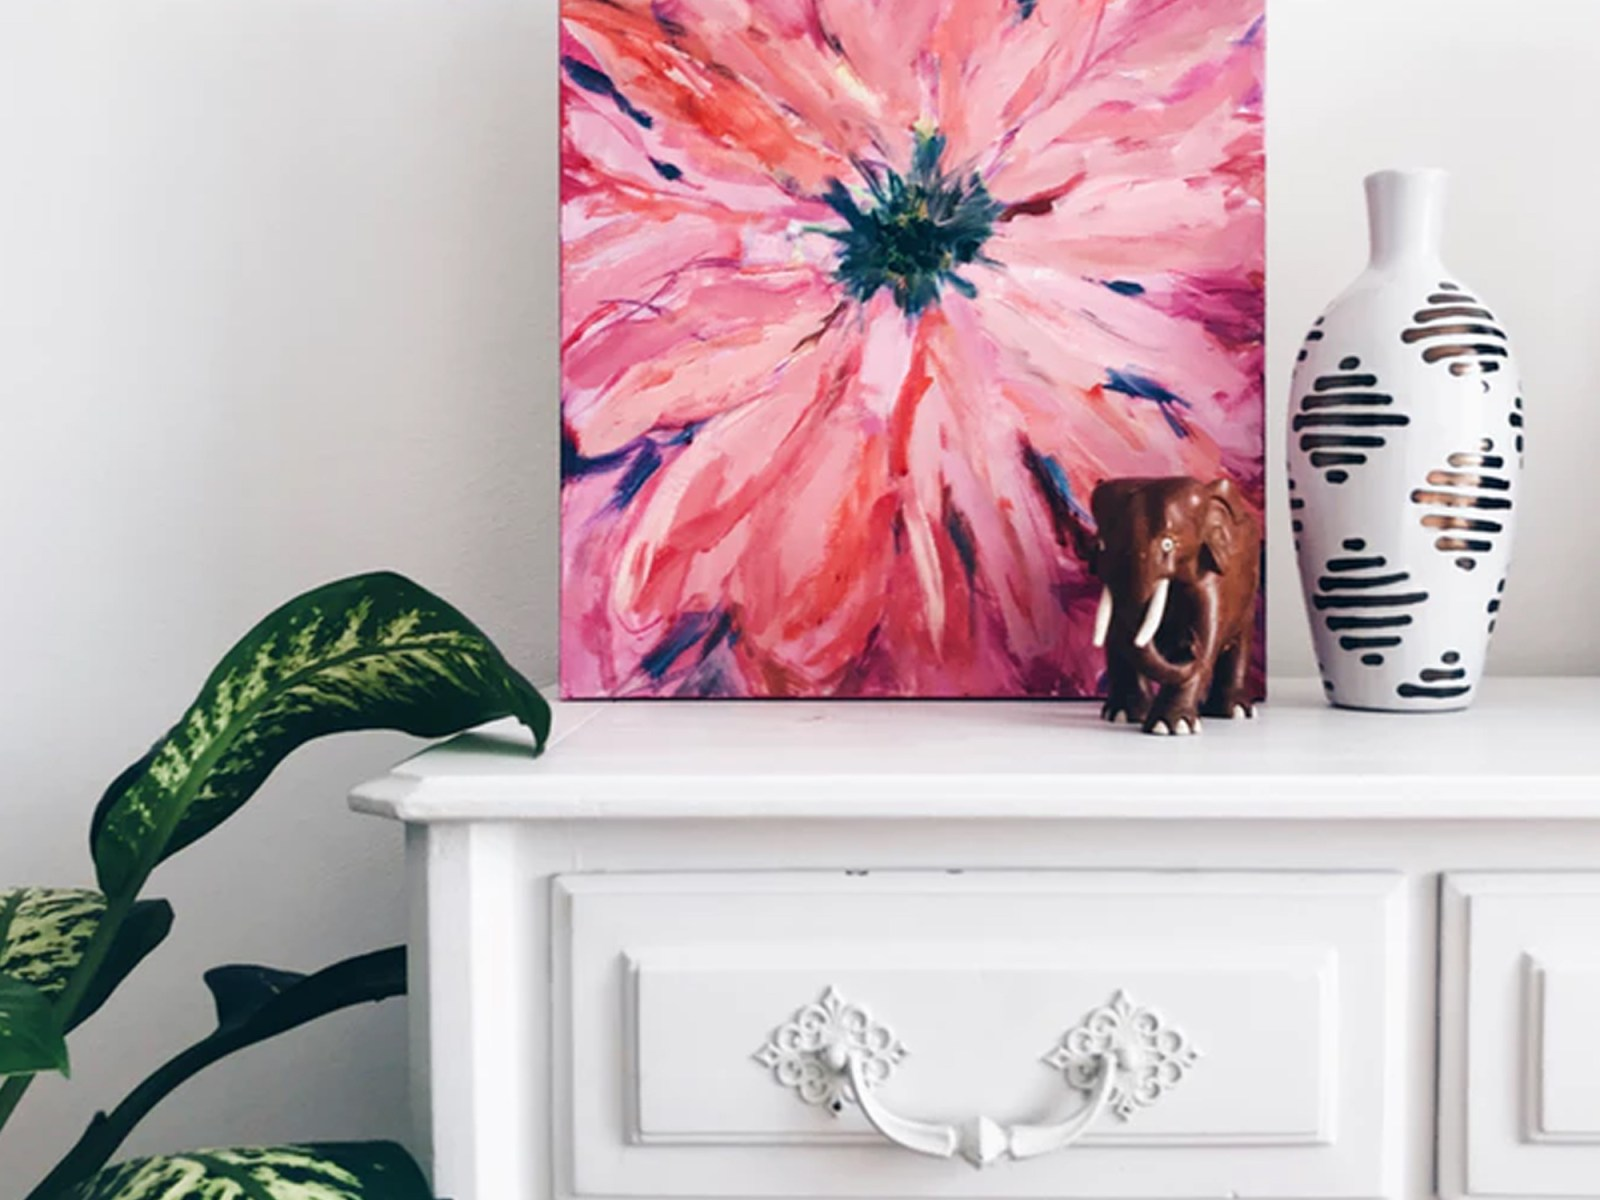 These wall art ideas for bedroom spaces are the best ways to decorate a master bedrooom, teenagers room, childrens room and more!